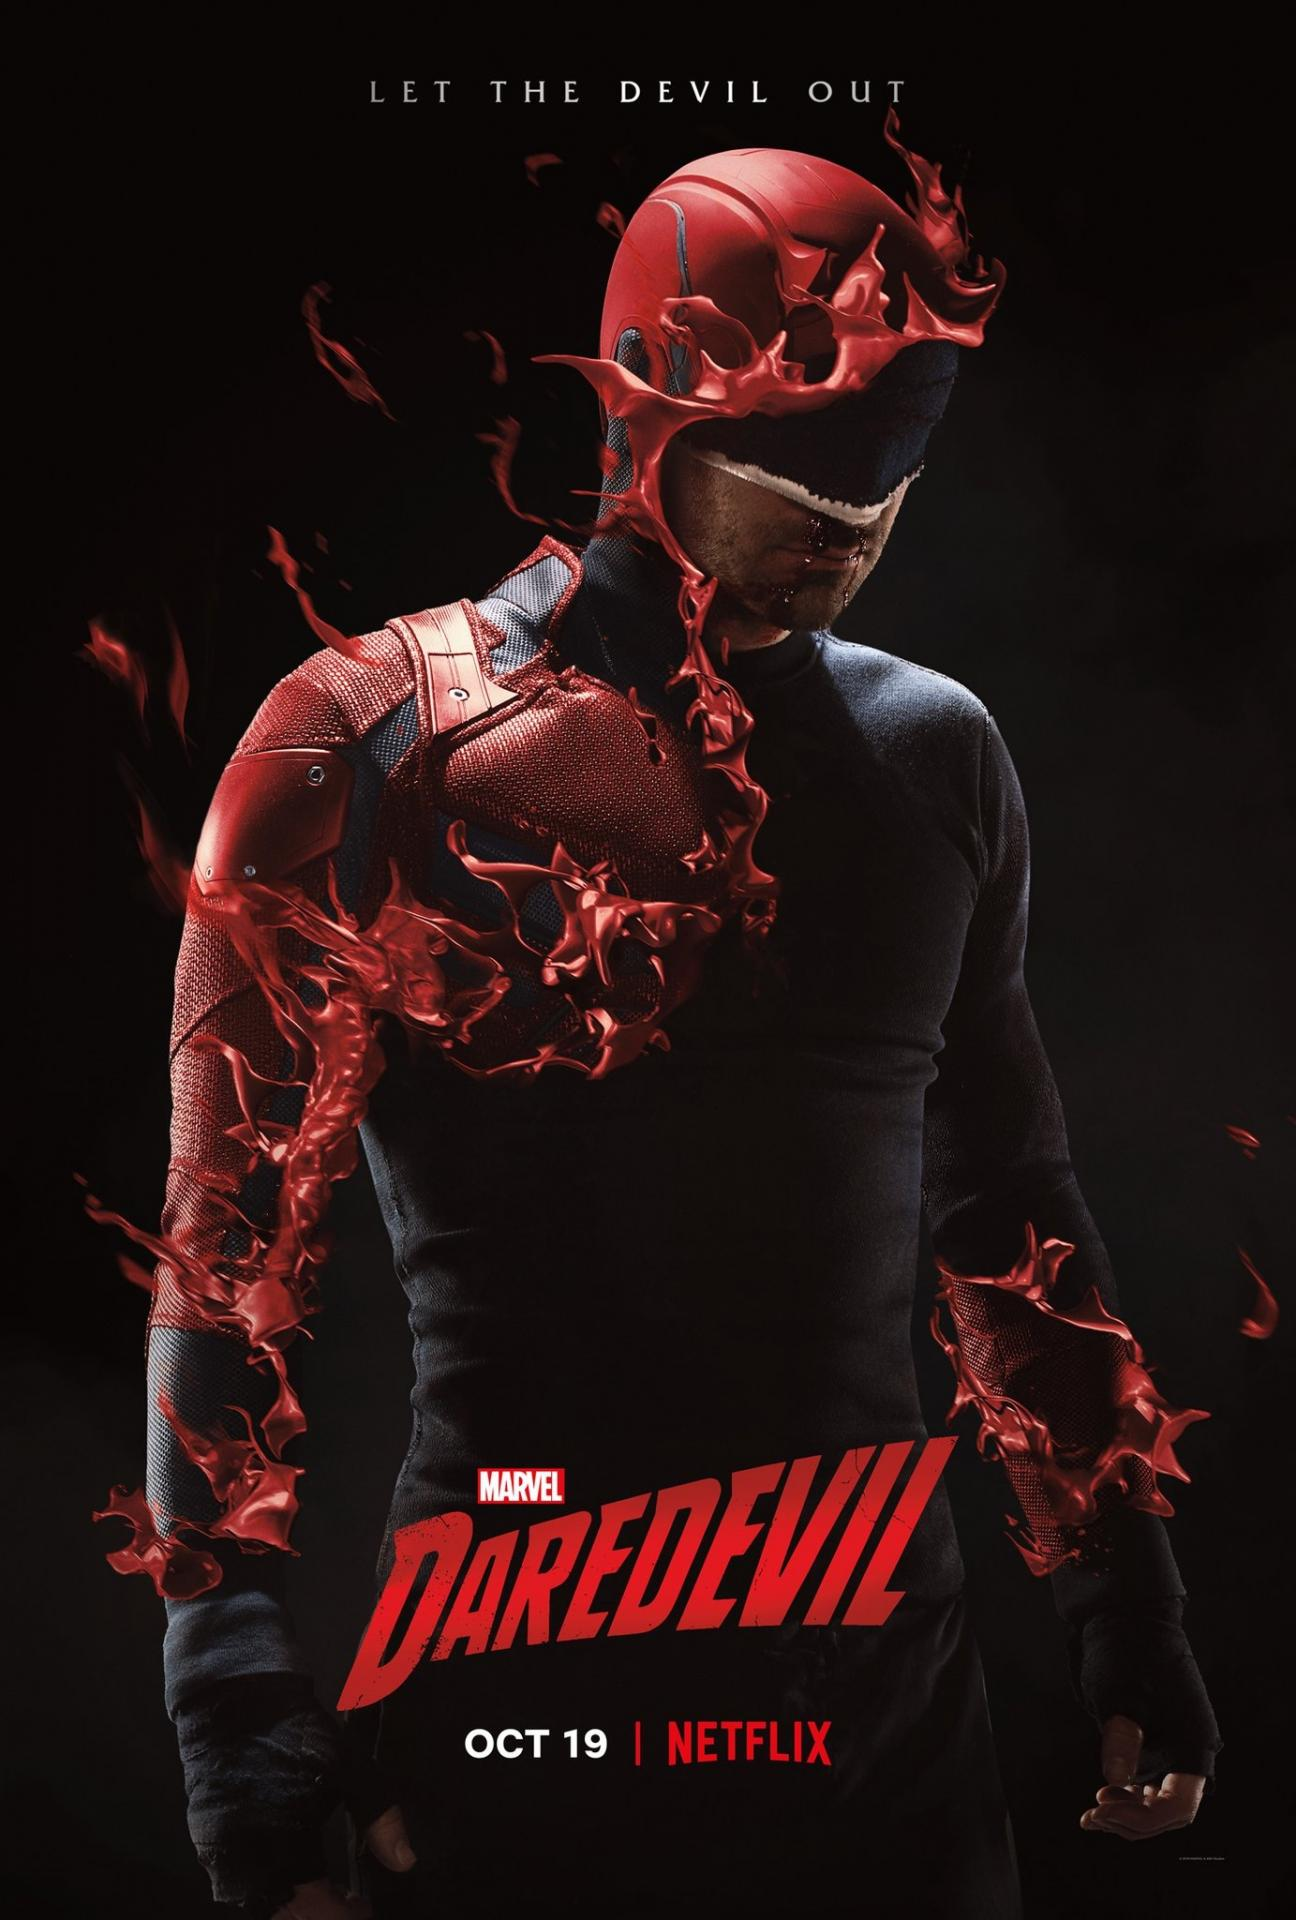 Dd s3 poster